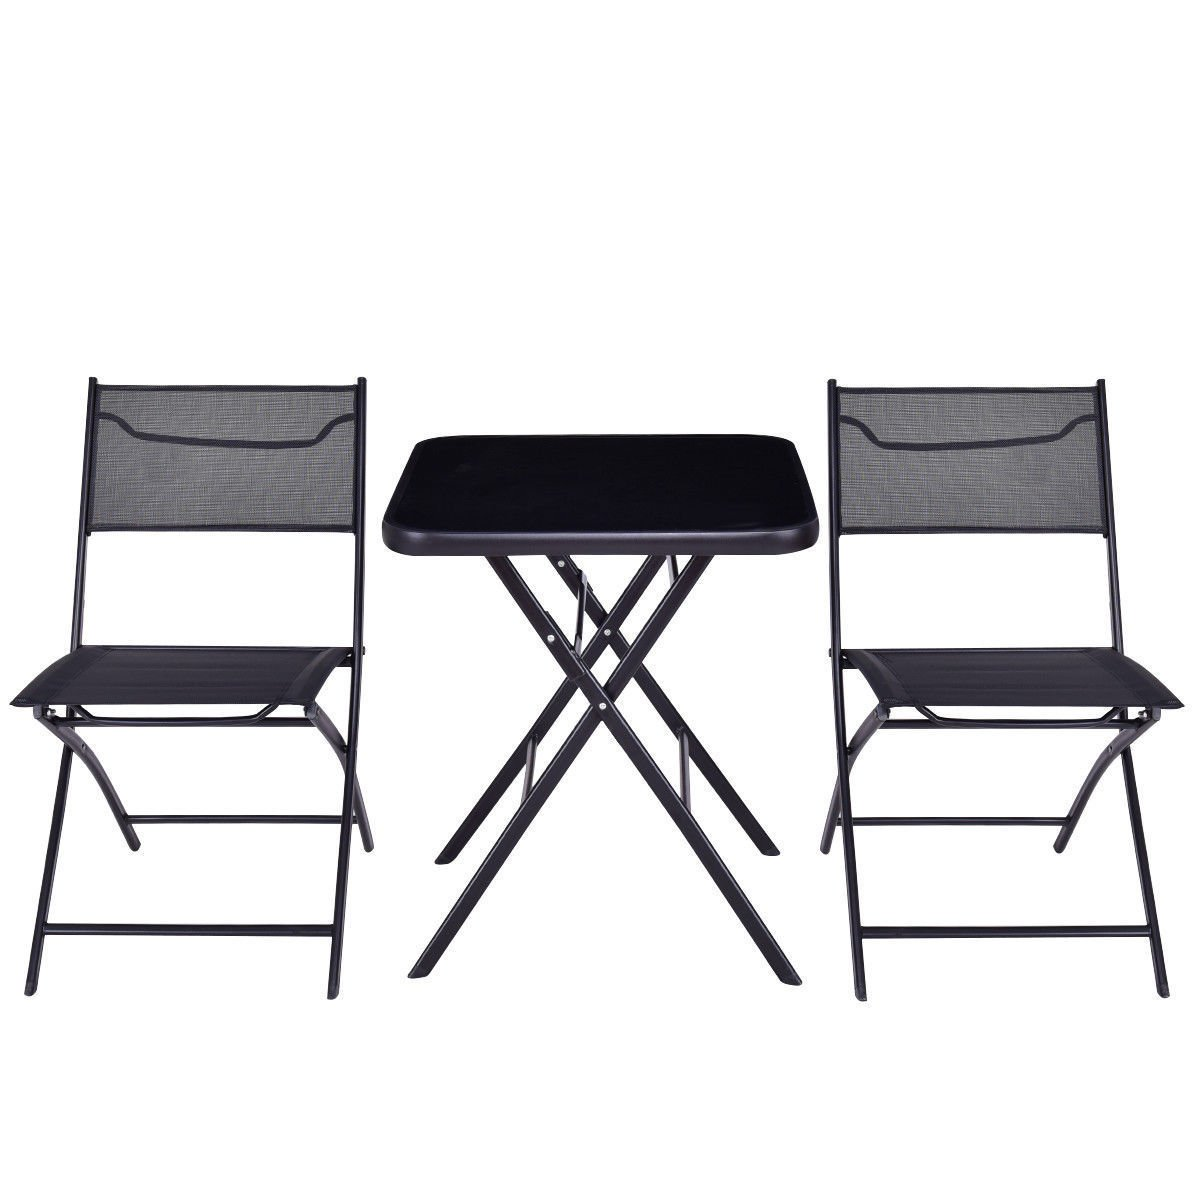 GHP Set of 3 Black Steel Textile Fiber & Tempered Glass Top Folding Table w 2-Pcs Chairs